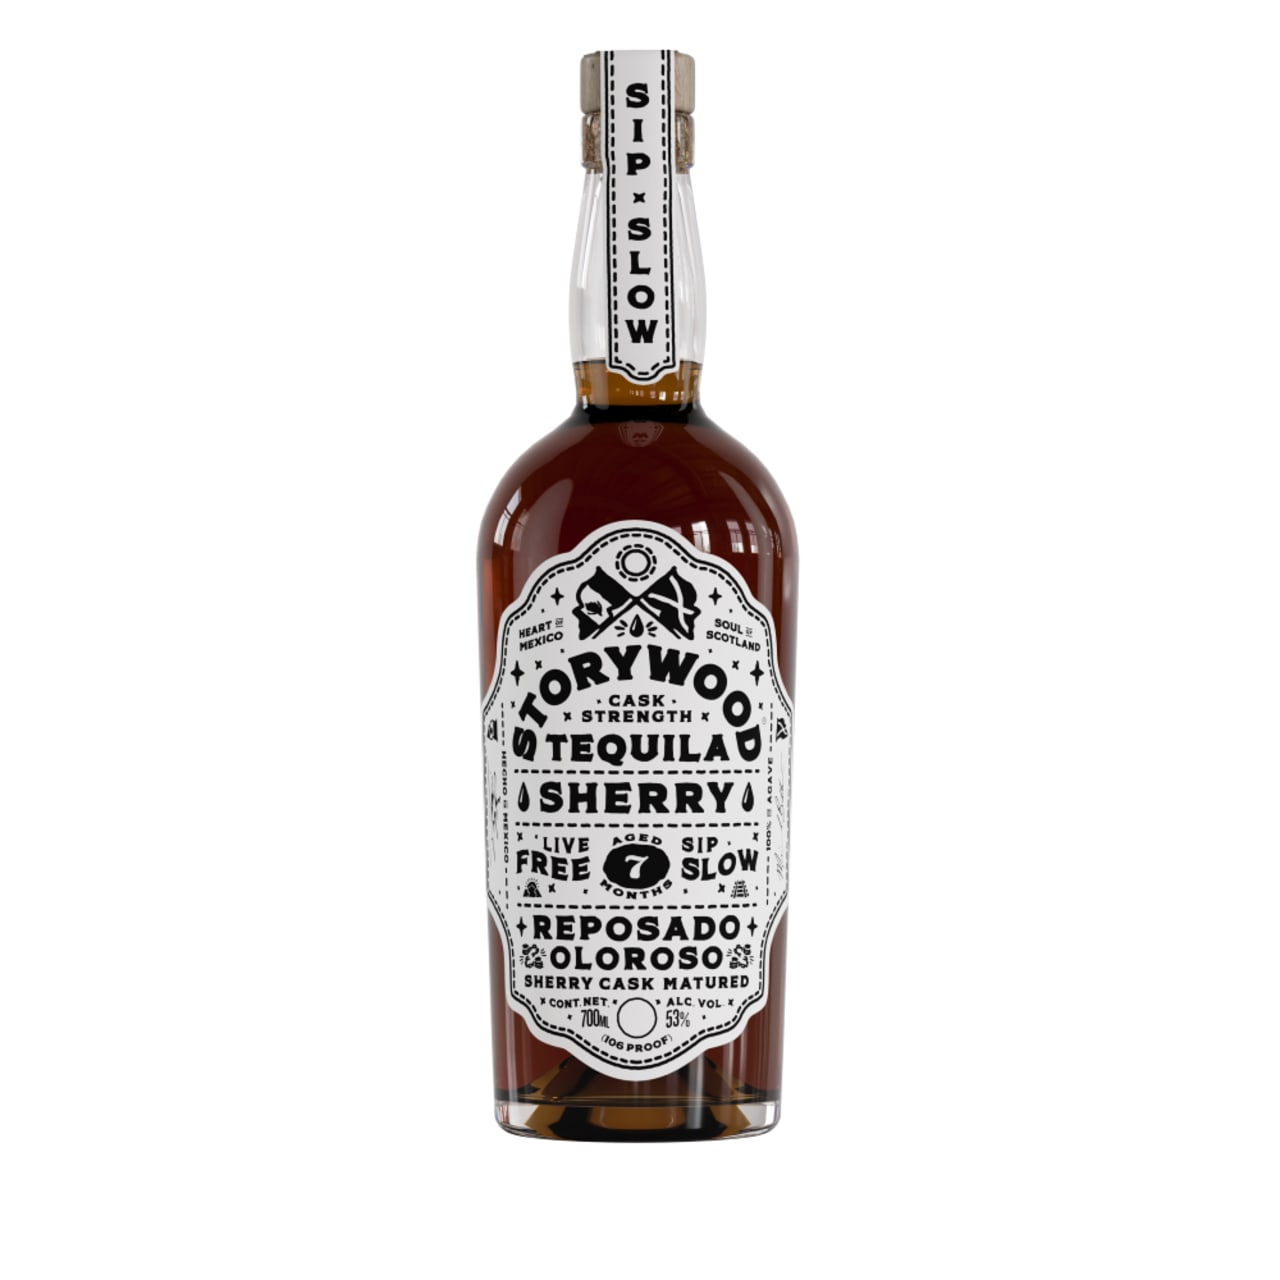 Product Image - Storywood Sherry 7 Cask Strength Tequila